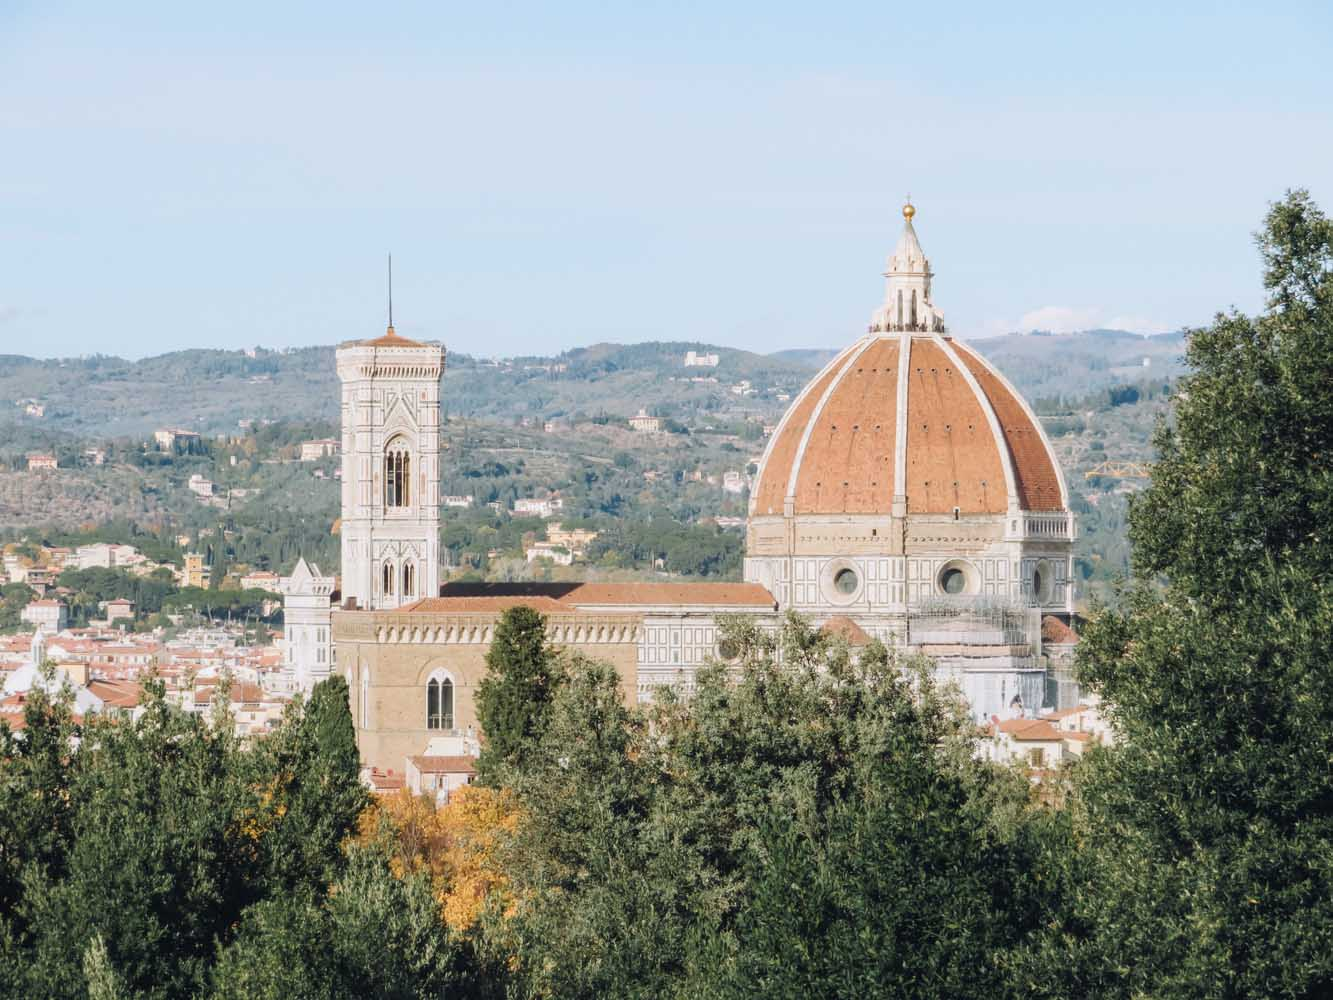 Tips voor de mooiste stad van Toscane, Florence - Map of Joy